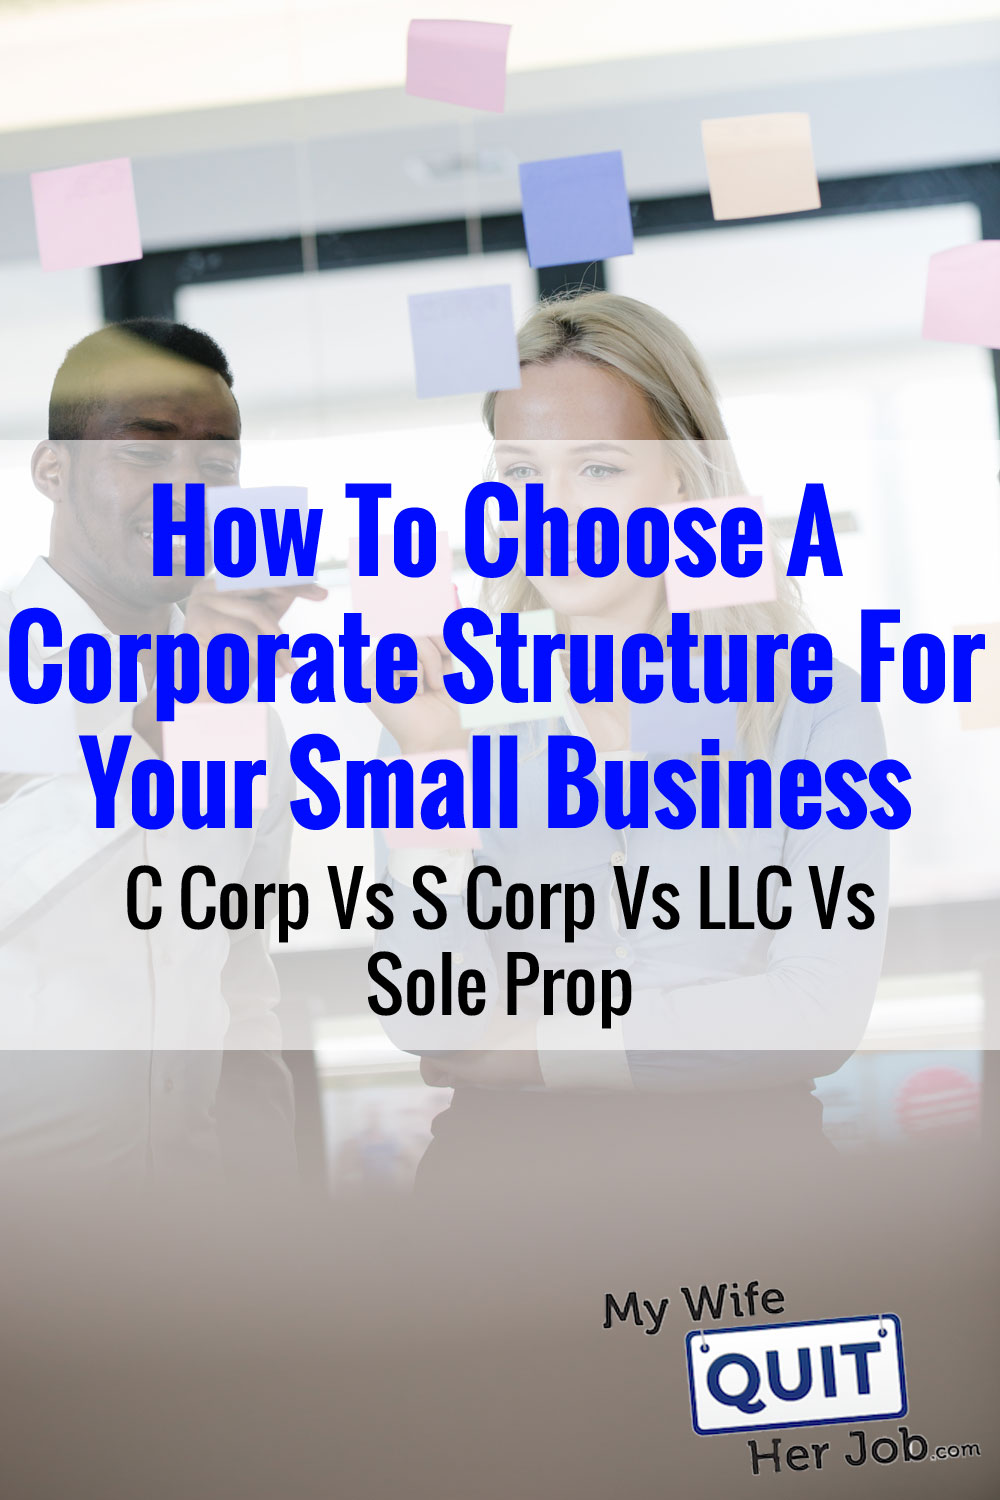 C Corp Vs S Corp Vs LLC Vs Sole Prop - A Concise Guide To Corporate Structure For Small Businesses